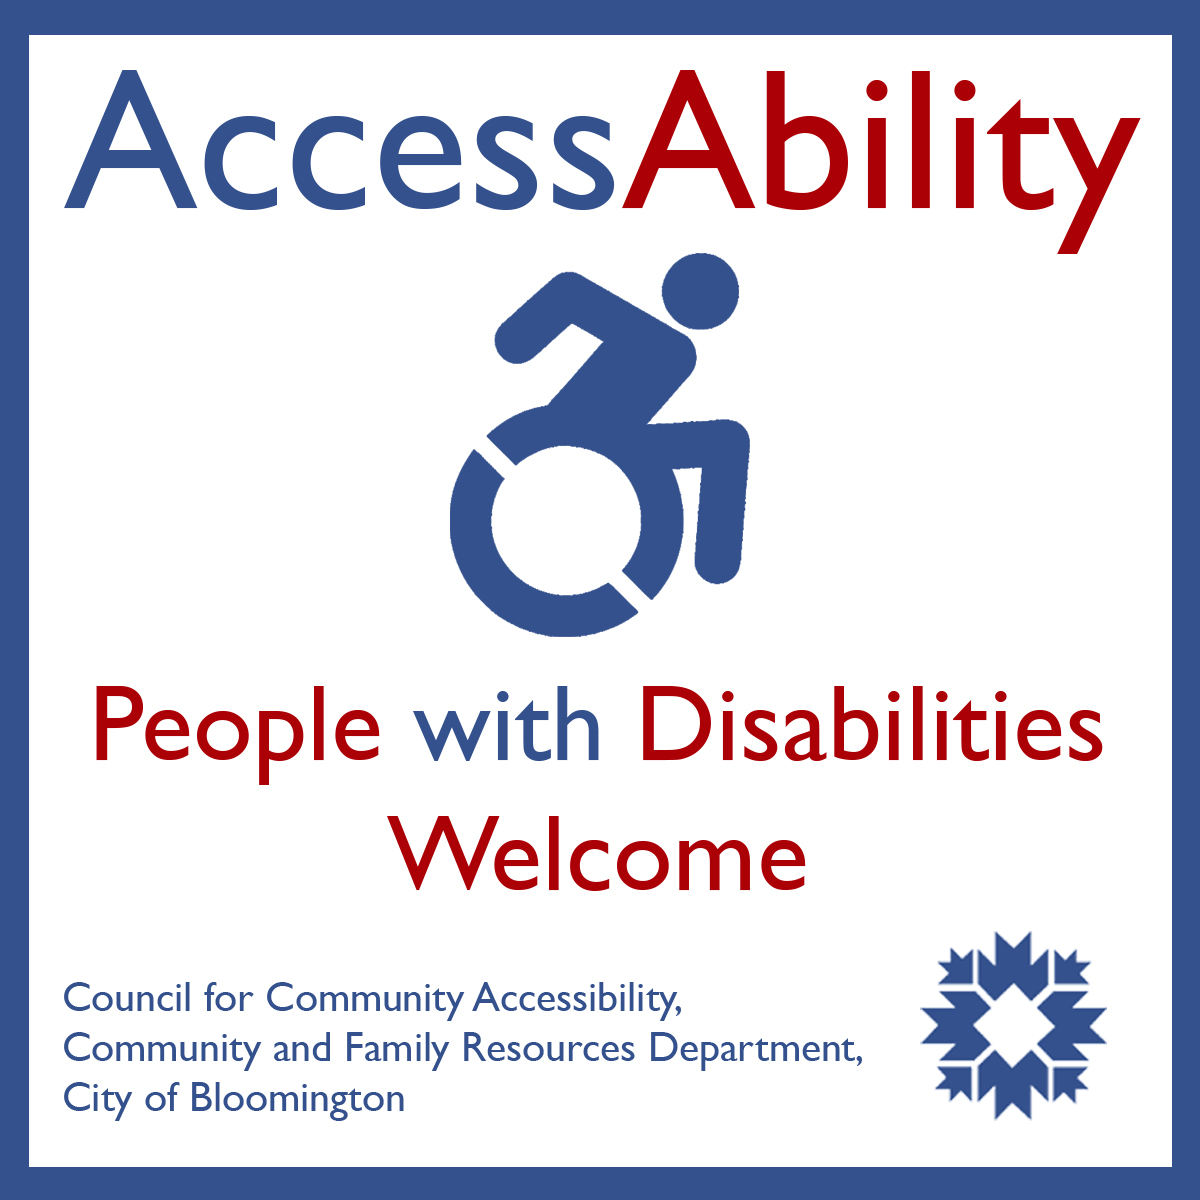 AccessAbility - People with Disabilities Welcome